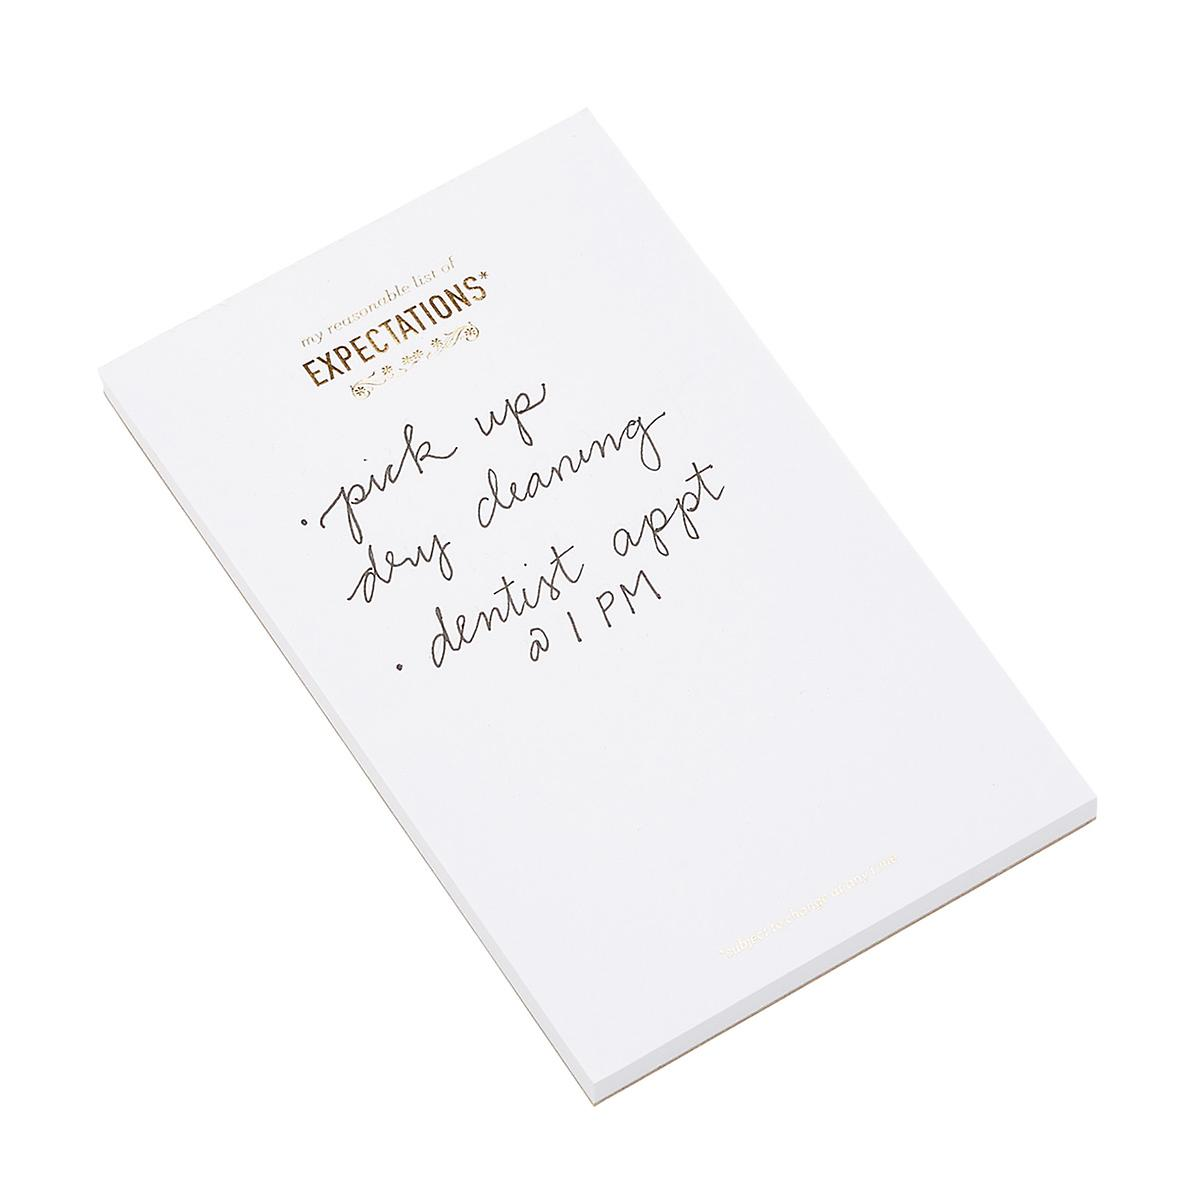 My Reasonable List of Expectations Notepad